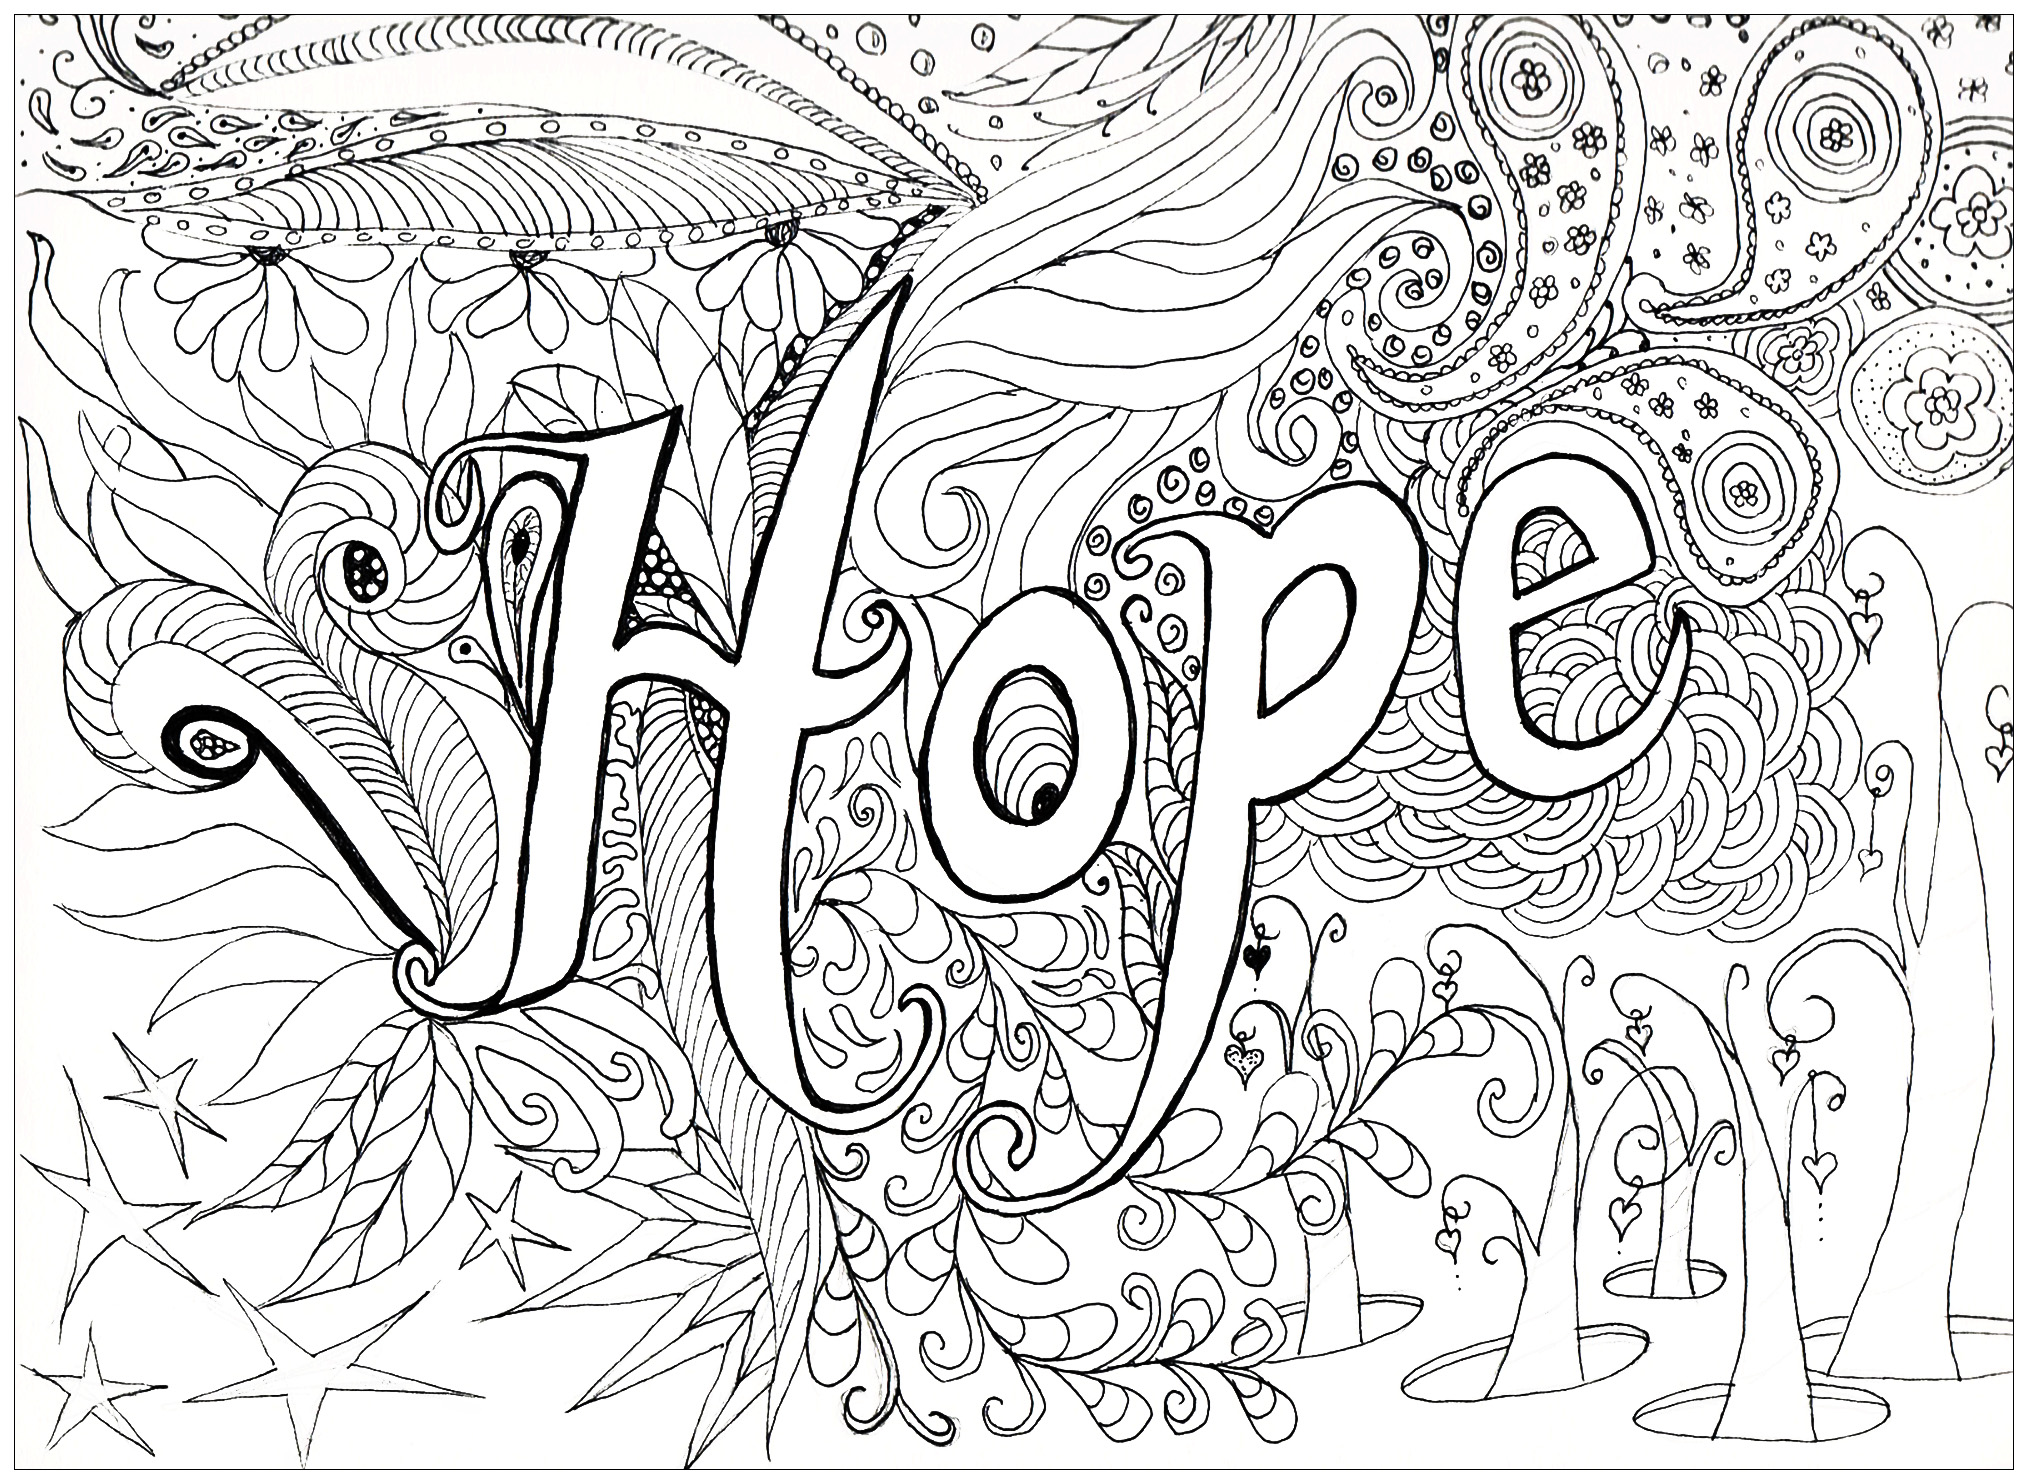 Anti stress colouring pages for adults - Pages Hope From The Gallery Zen Anti Stress